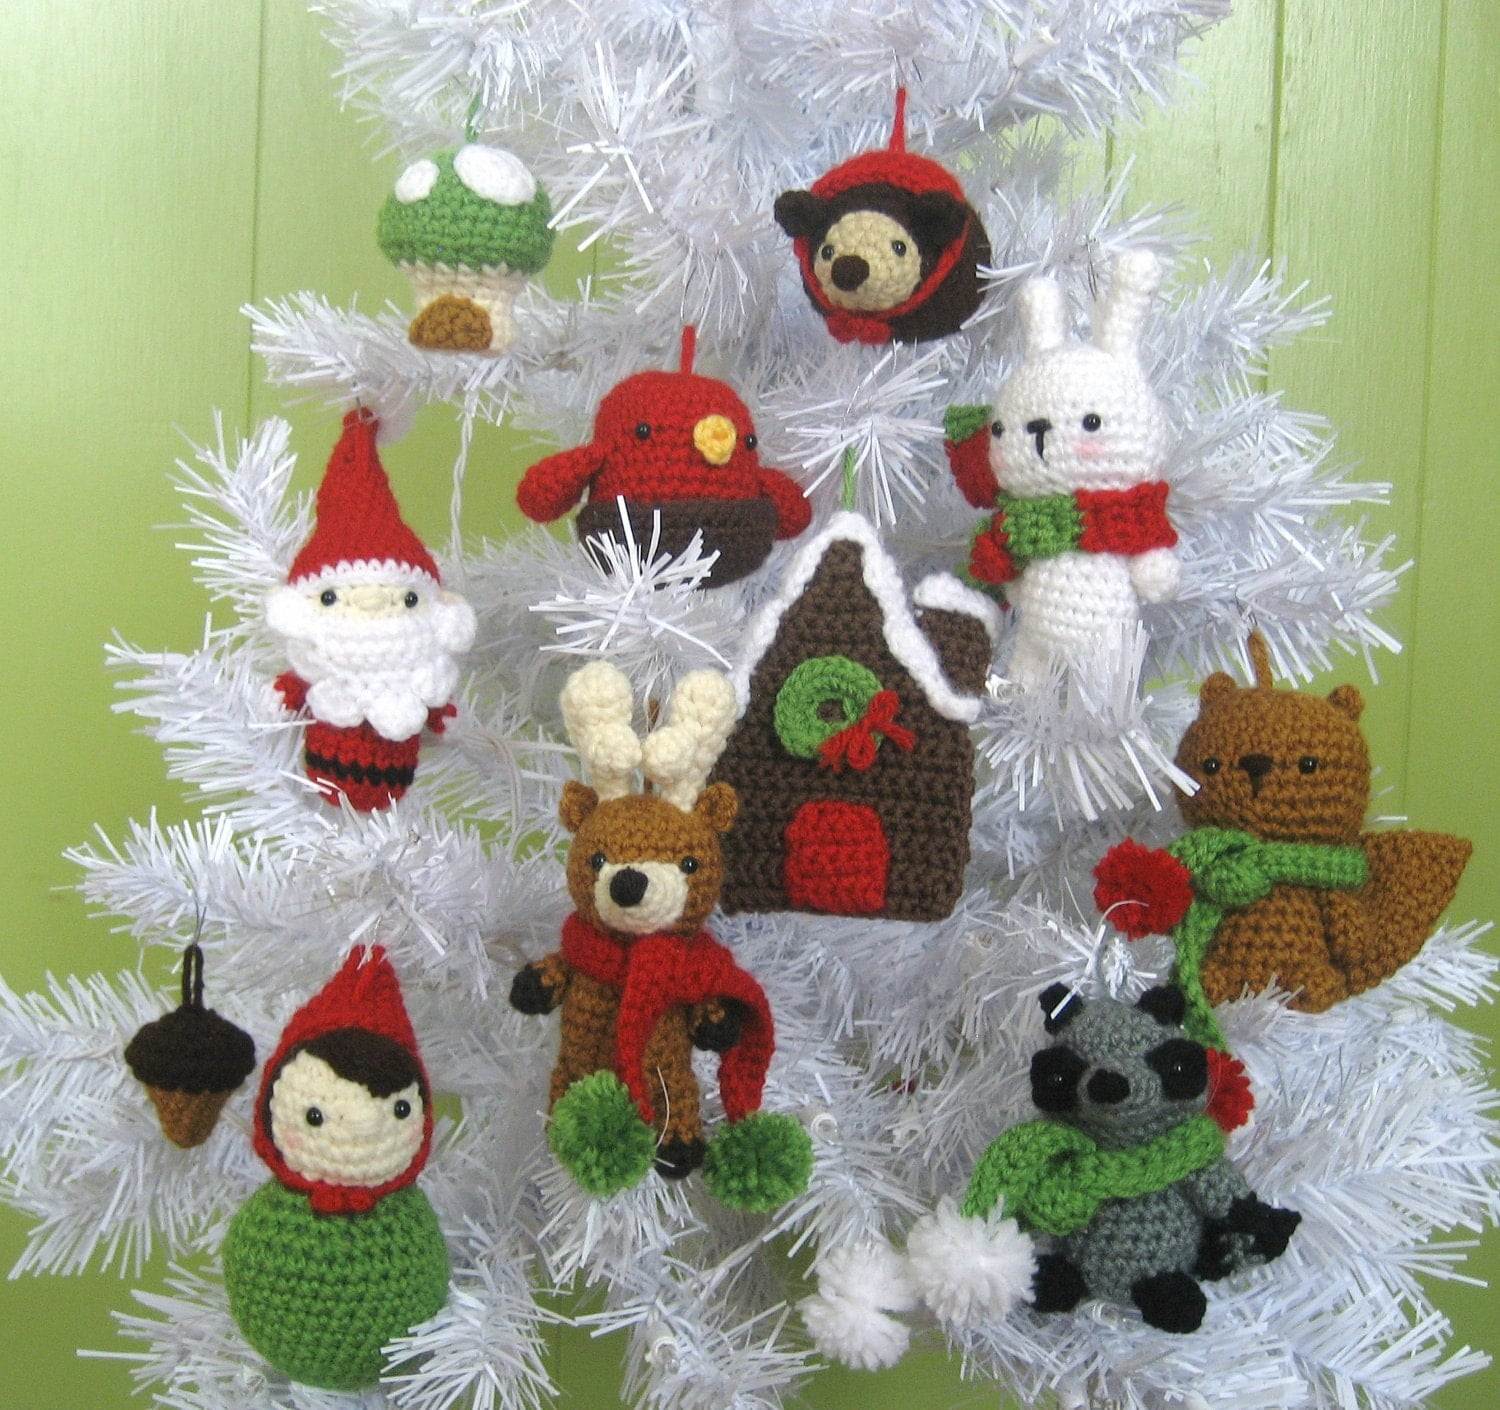 Free Crochet Patterns For Christmas Stockings Free Crochet Patterns ...